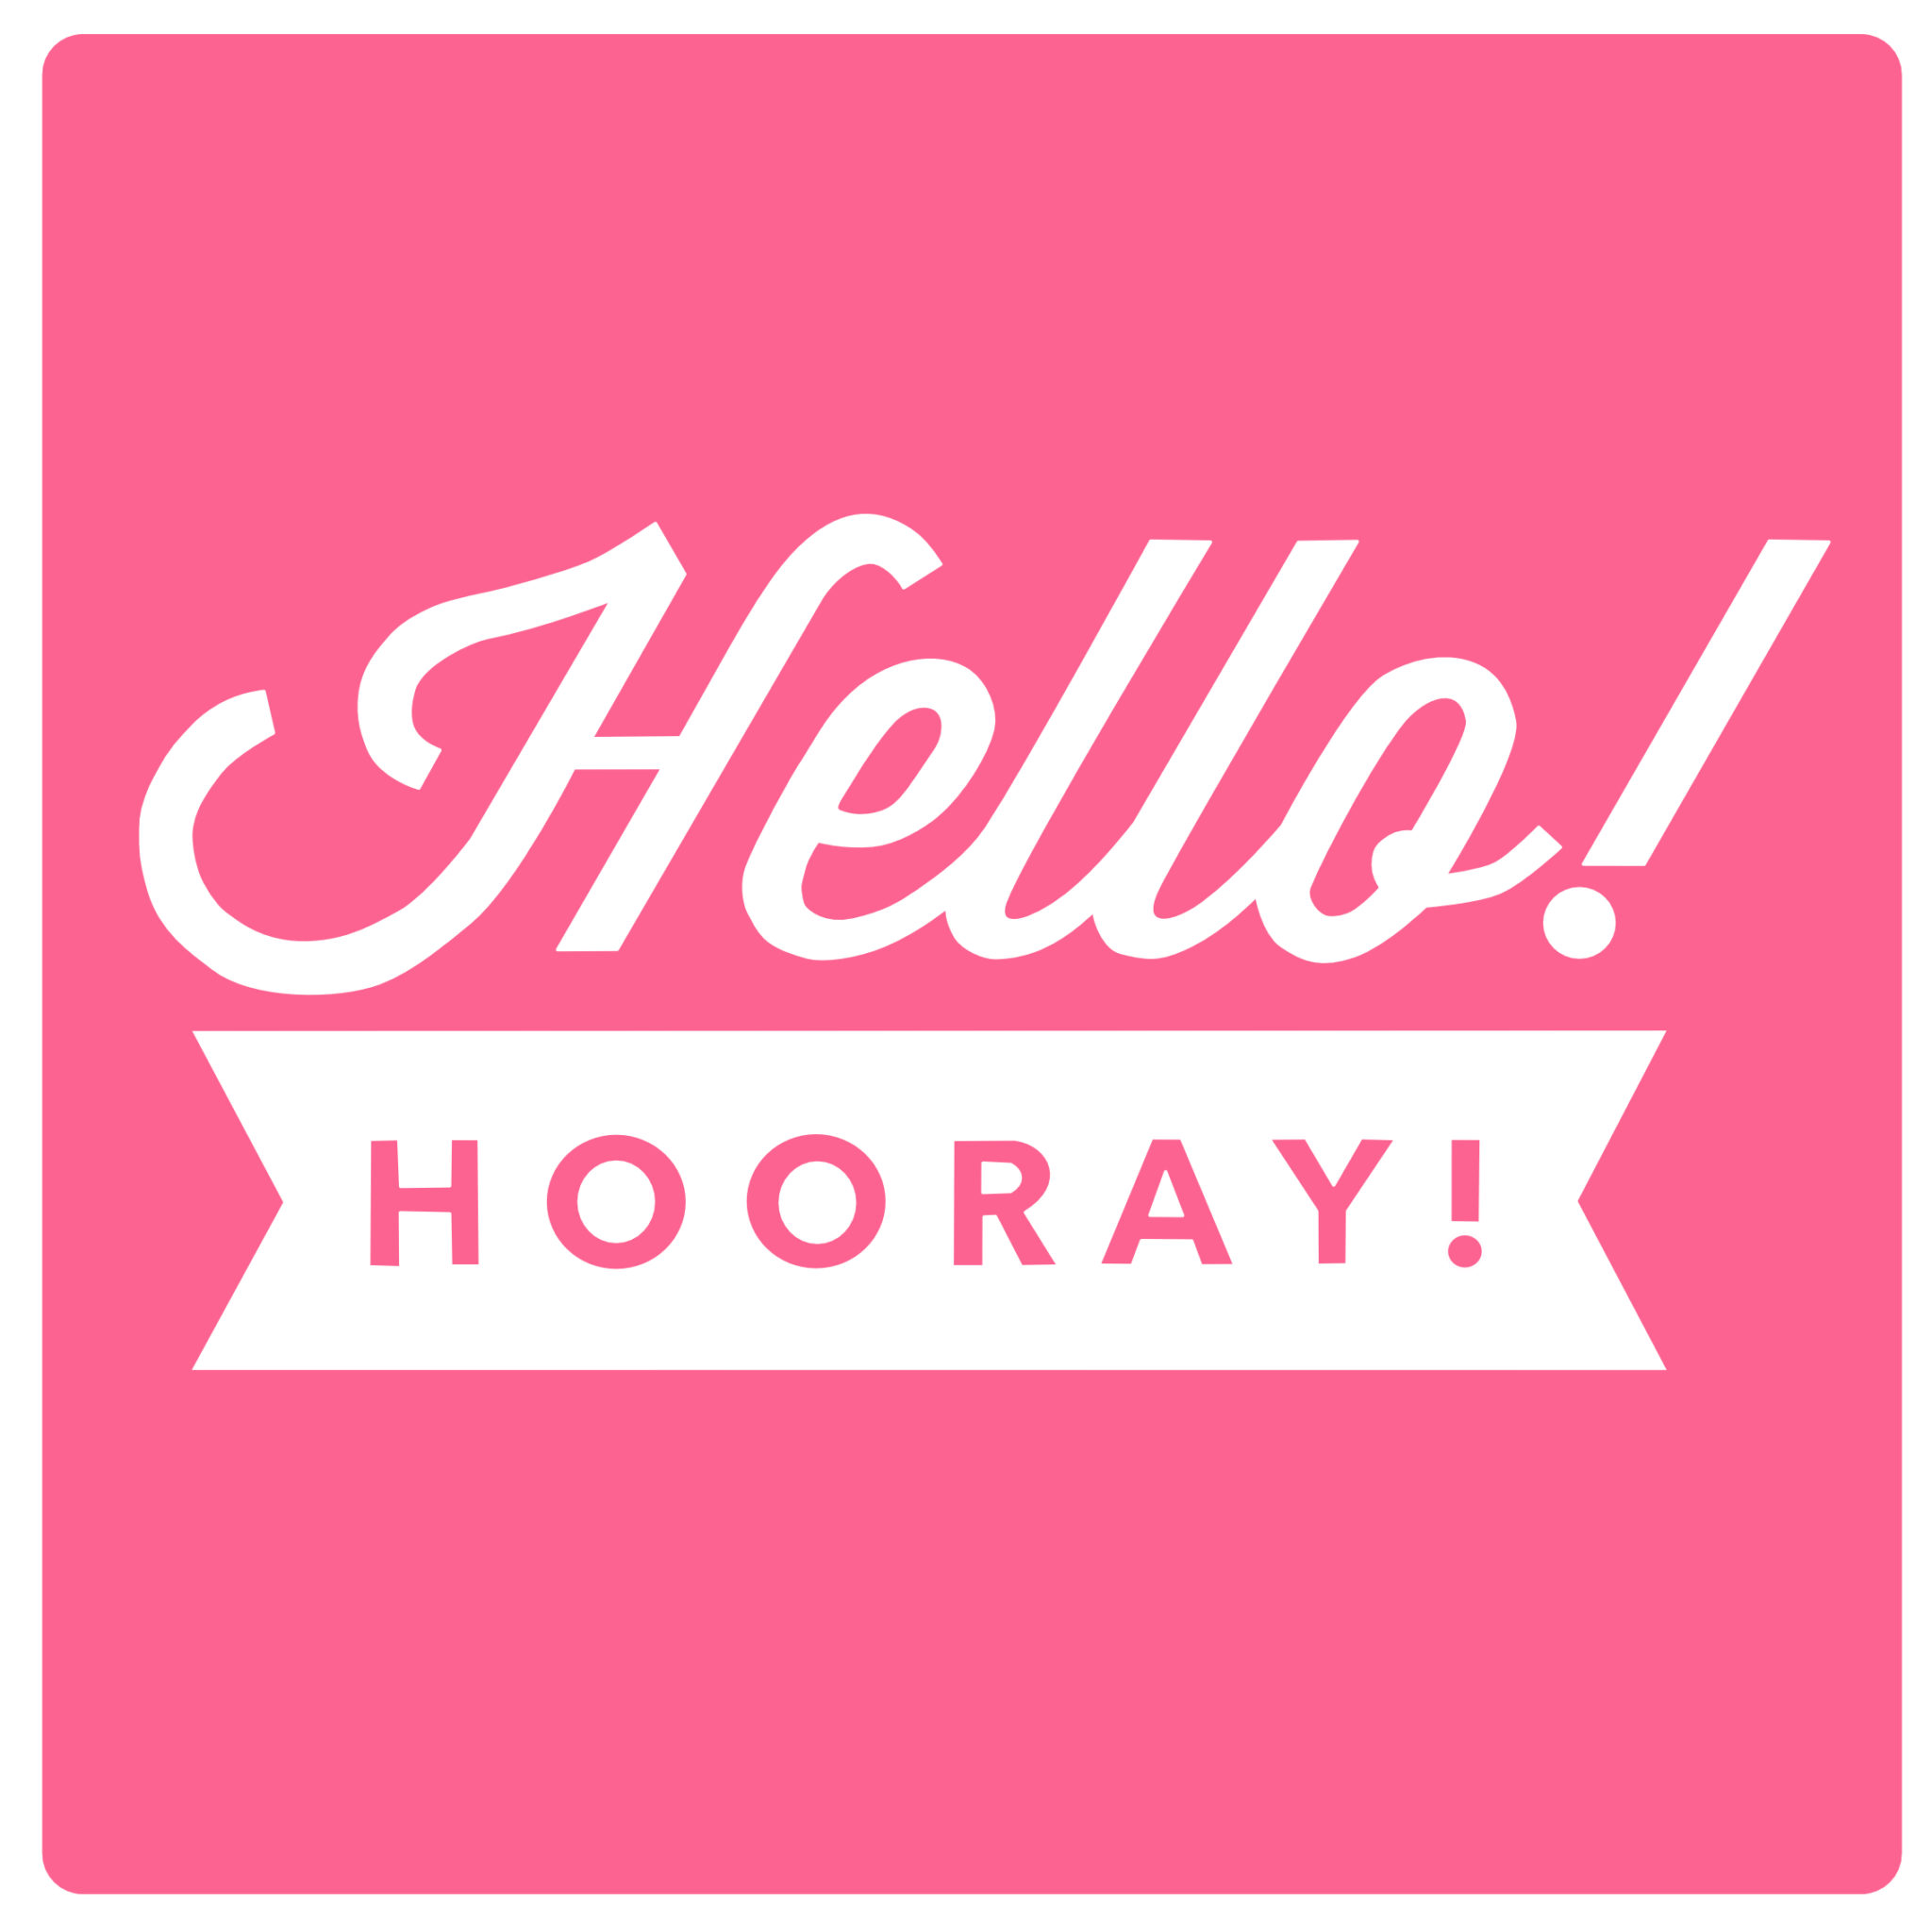 Hello! Hooray!